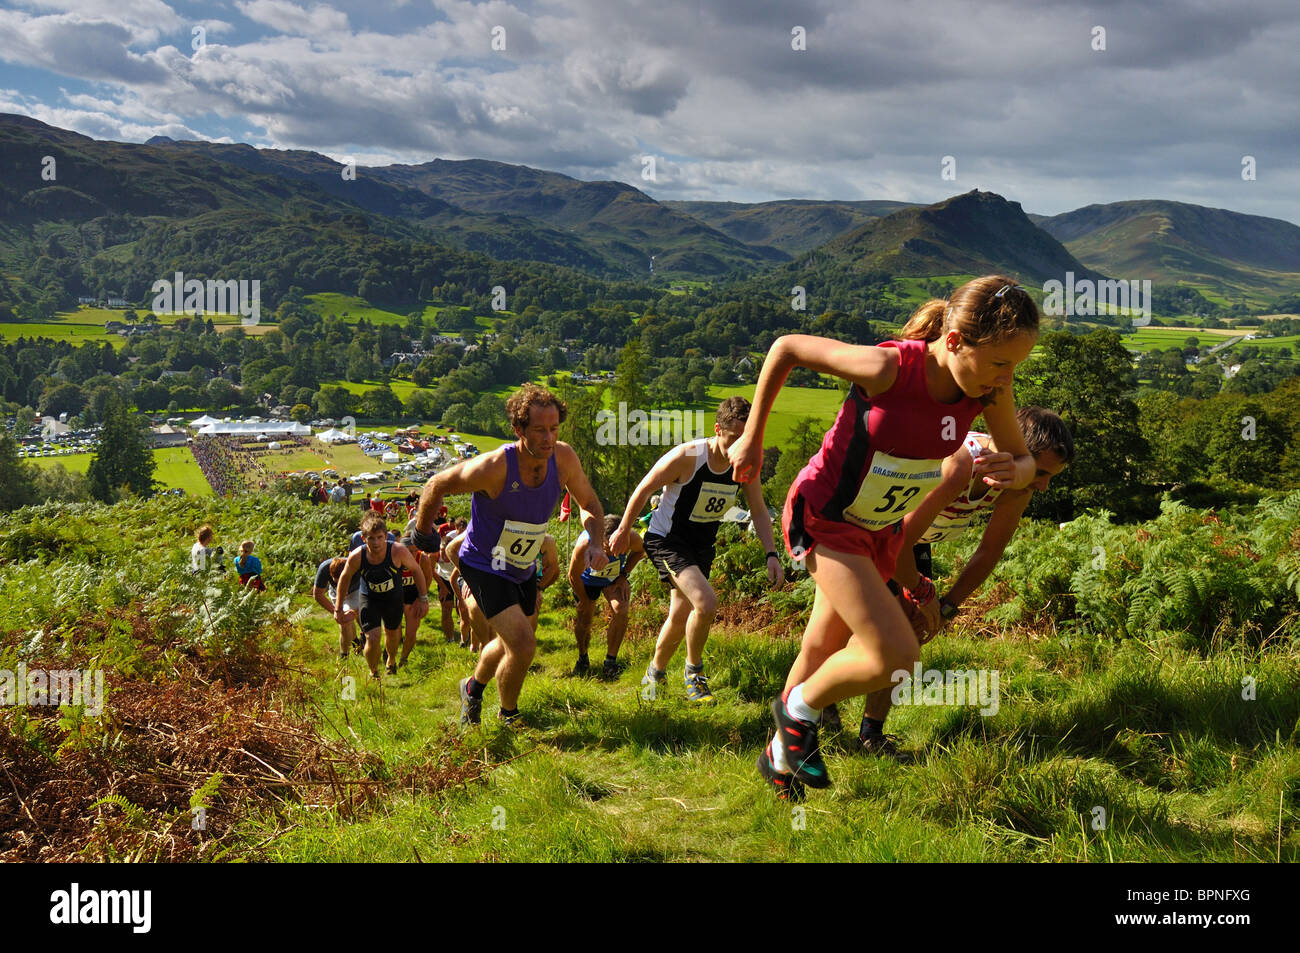 Fellrunners on the way up to Butter Crag in the Grasmere Senior Guides Race at the 2010 Grasmere Show - Stock Image